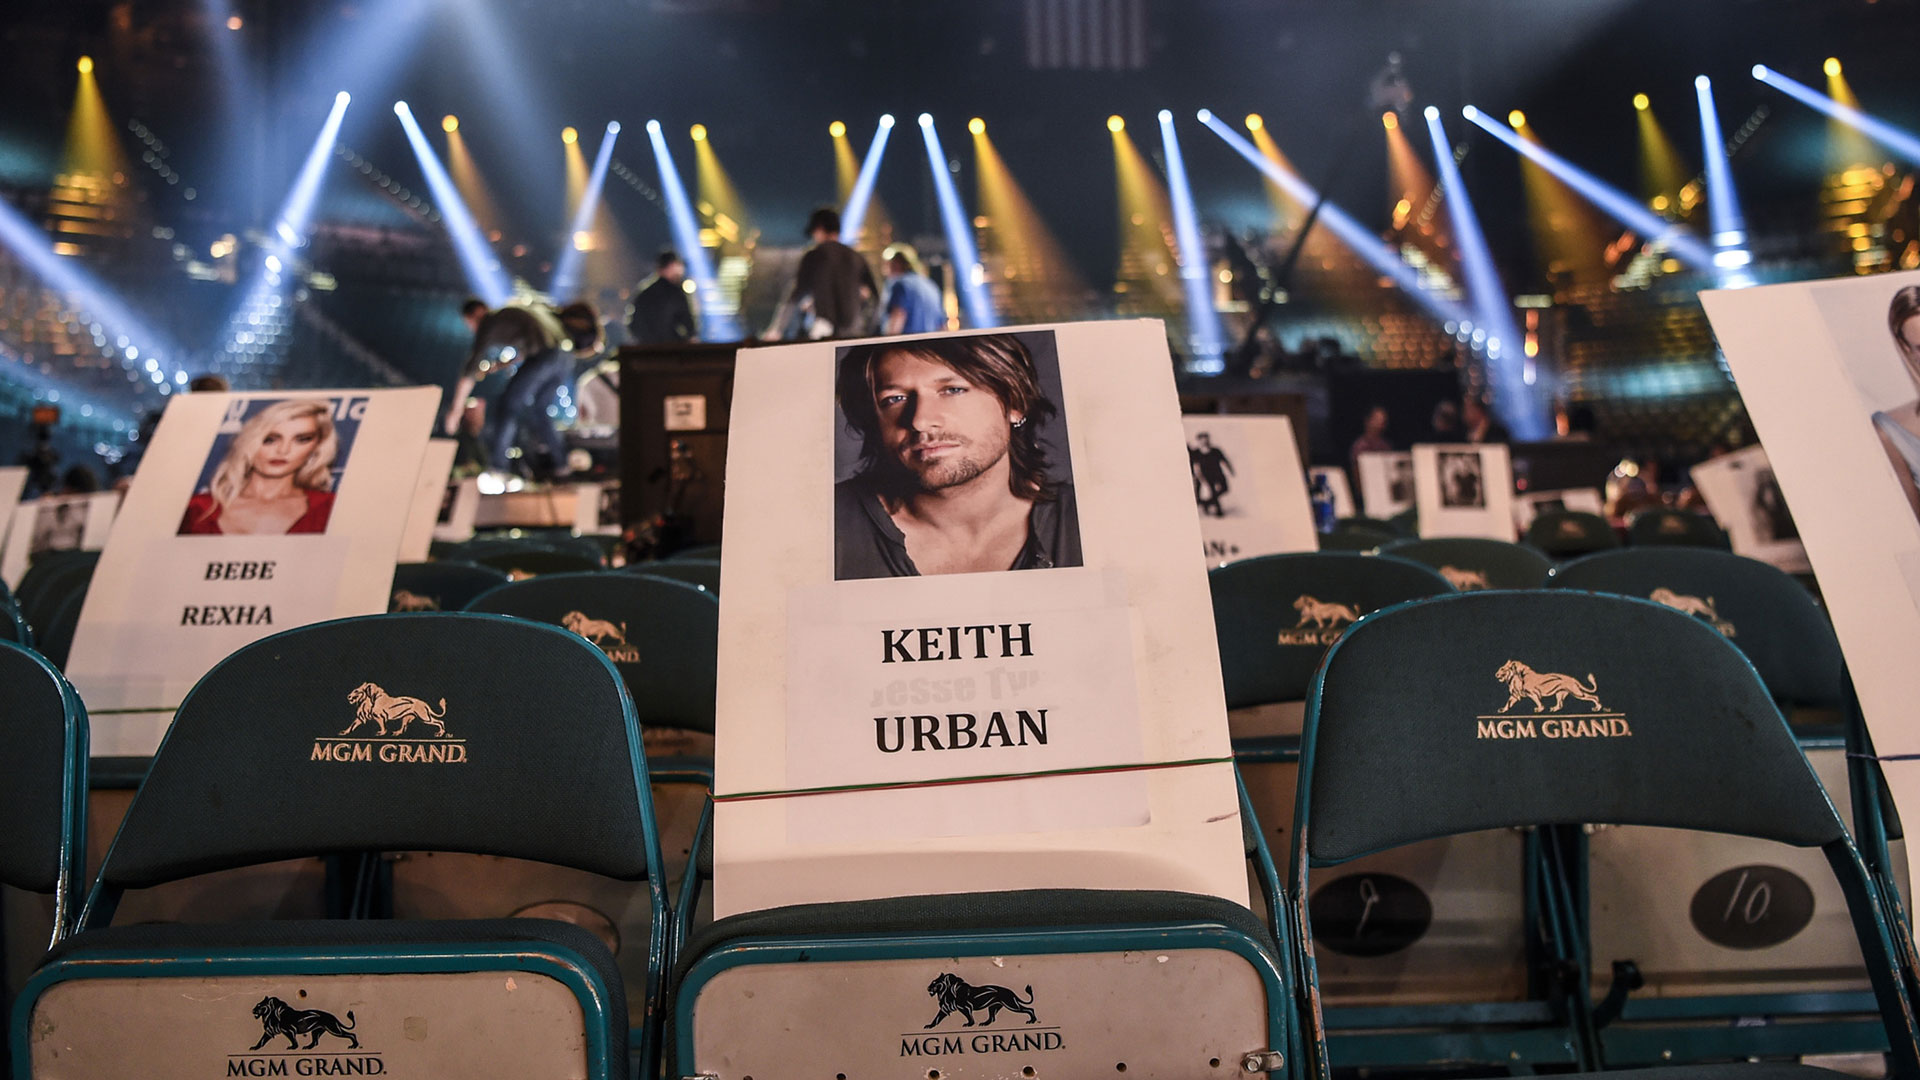 Keith Urban's got his seat reserved for the big show.